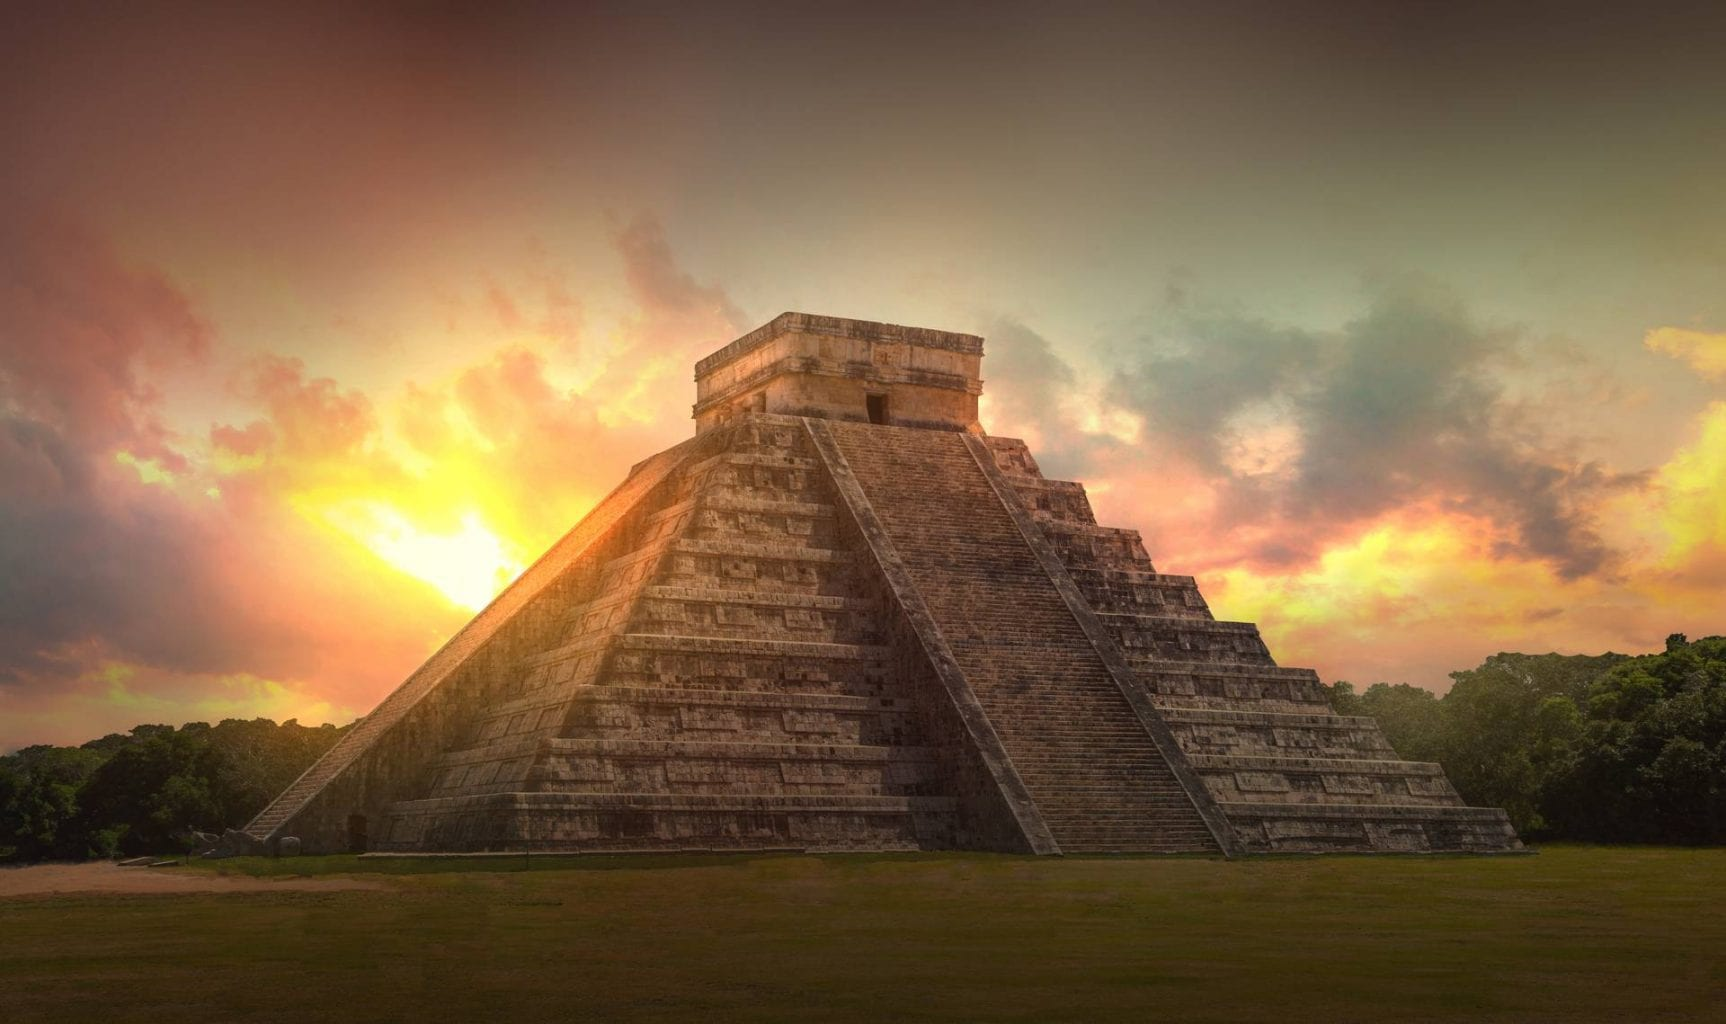 The Temple of Kukulcán in Chichen Itza, the most famous ancient site on the Yucatan Peninsula. Credit: Shutterstock